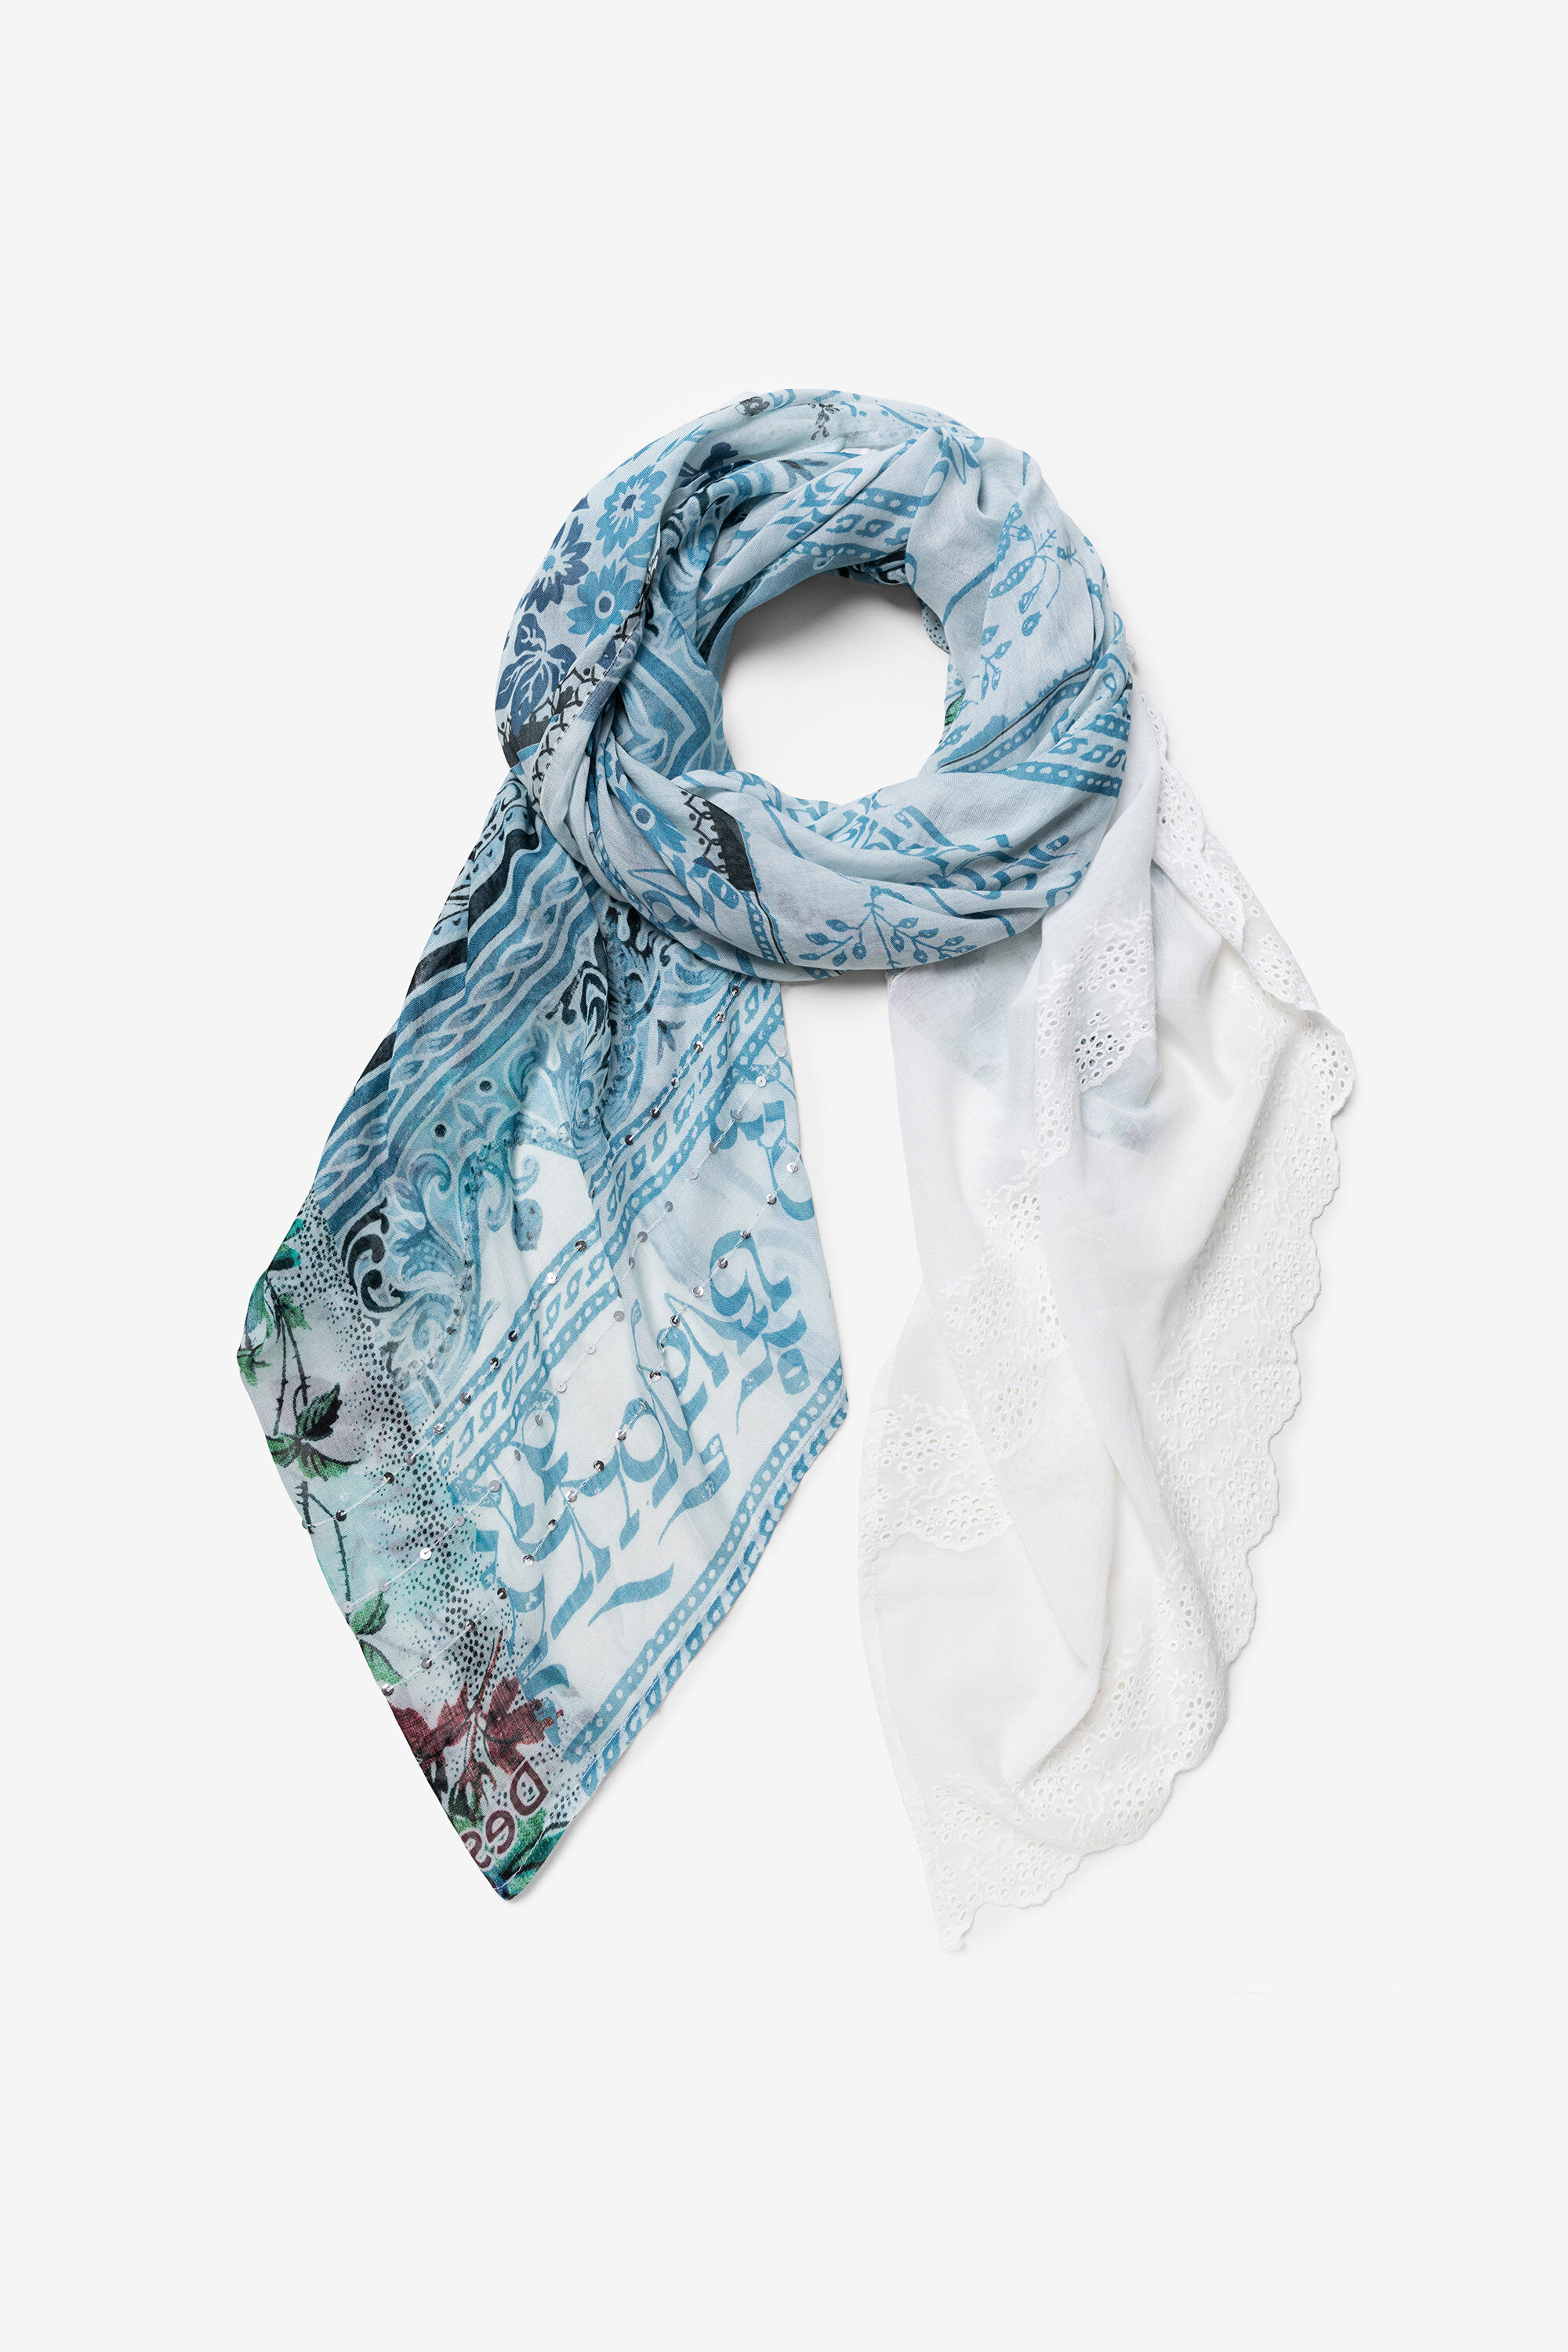 Foulard inspiration hindoue - BLACK - U